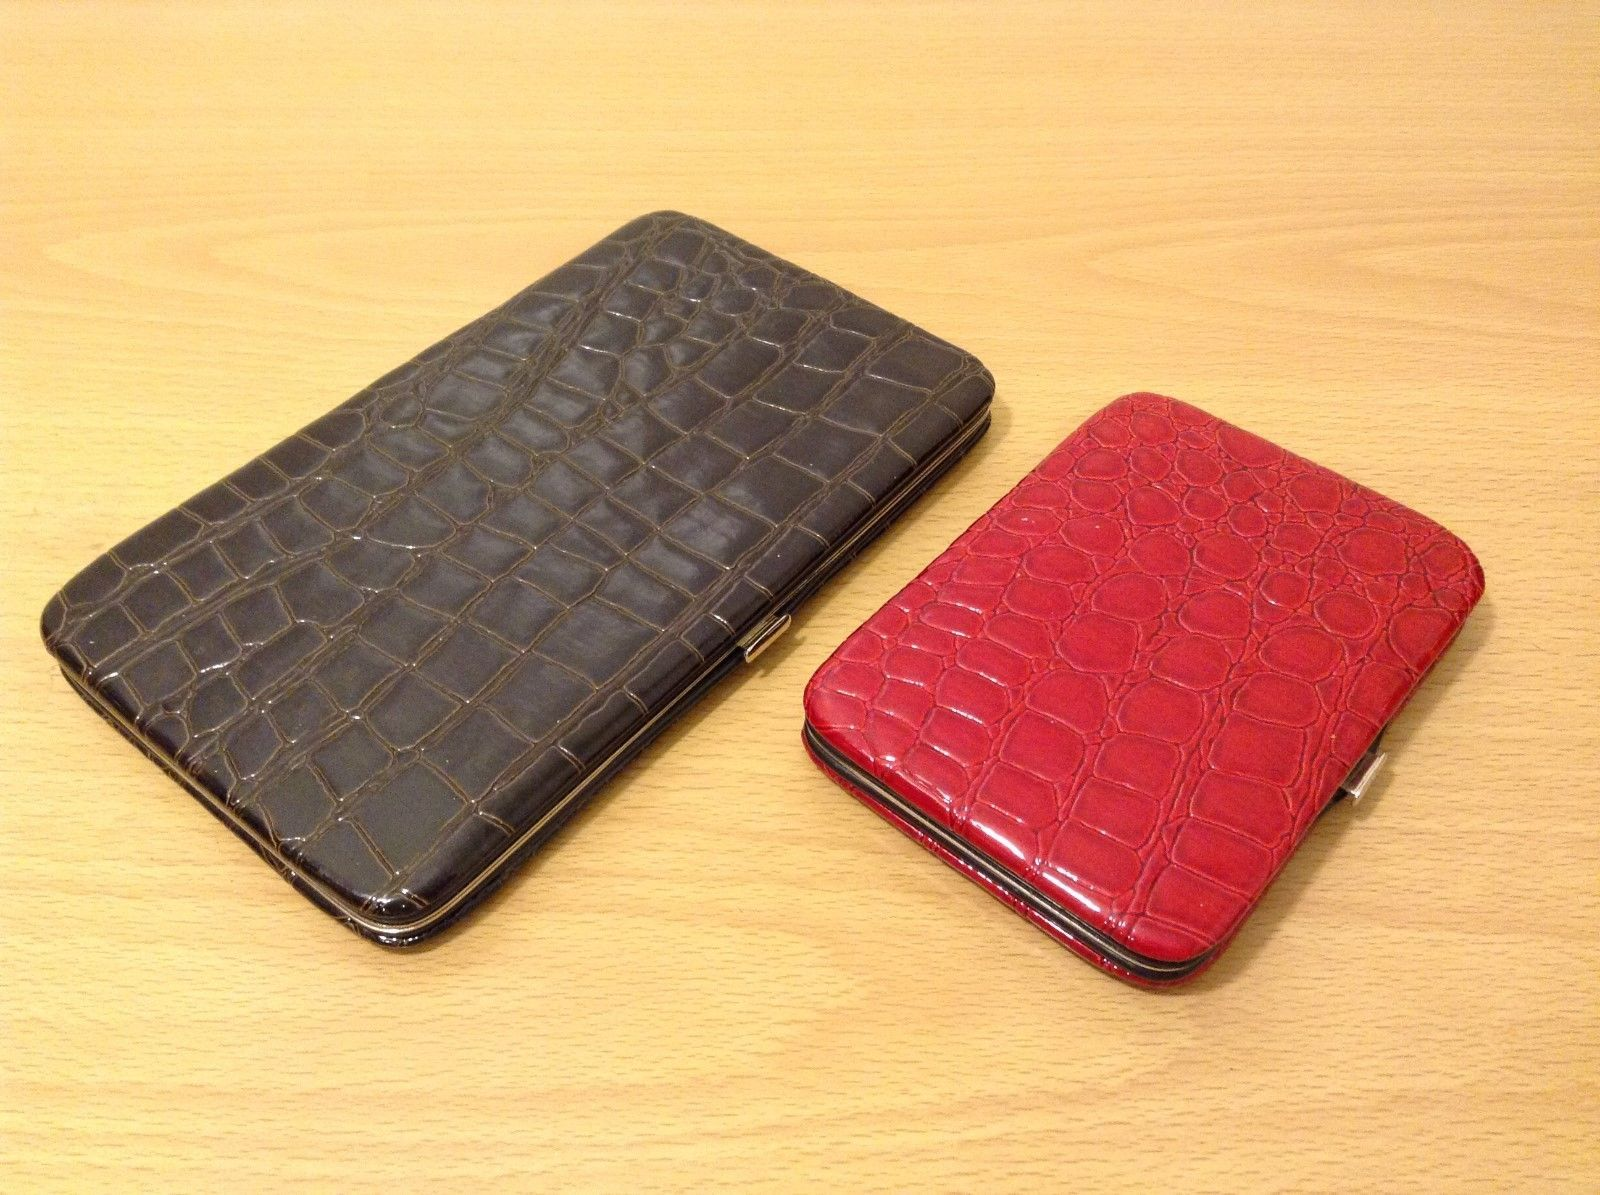 Ladies Crocodile Pattern Wallet Organizer Choice of LG SM Sz Red Black